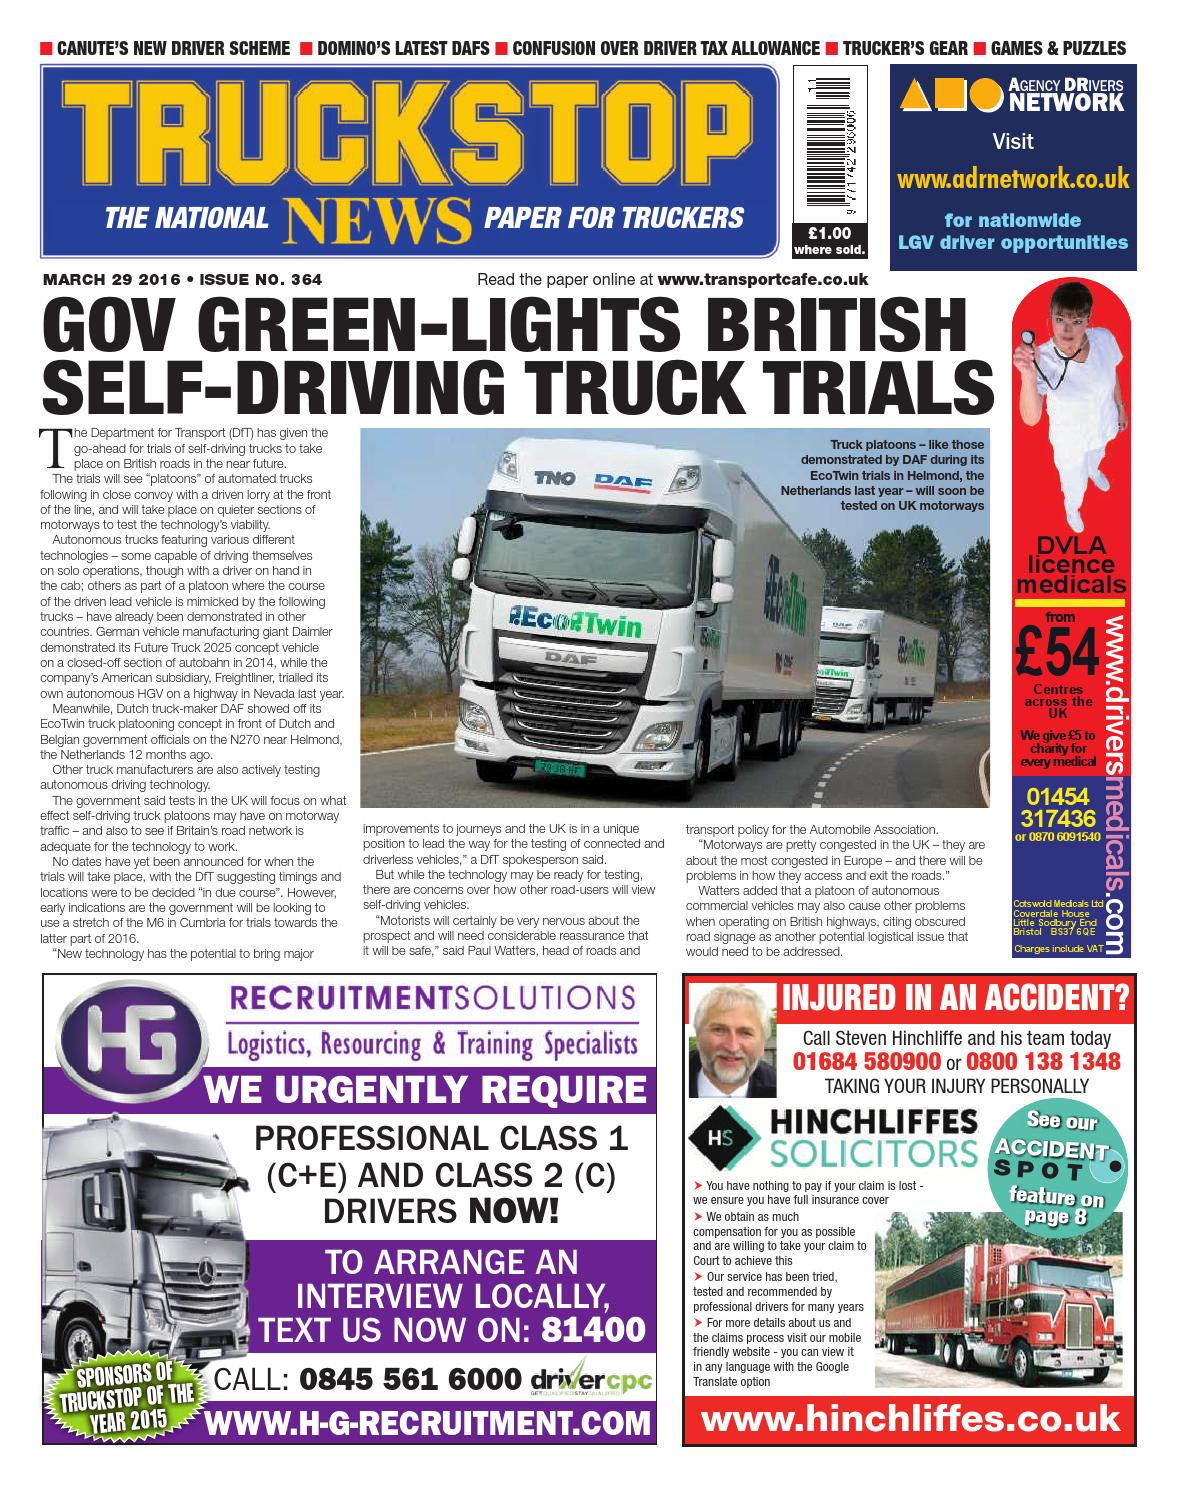 Truck stop news issue 364 by KELSEY Publishing Ltd - issuu